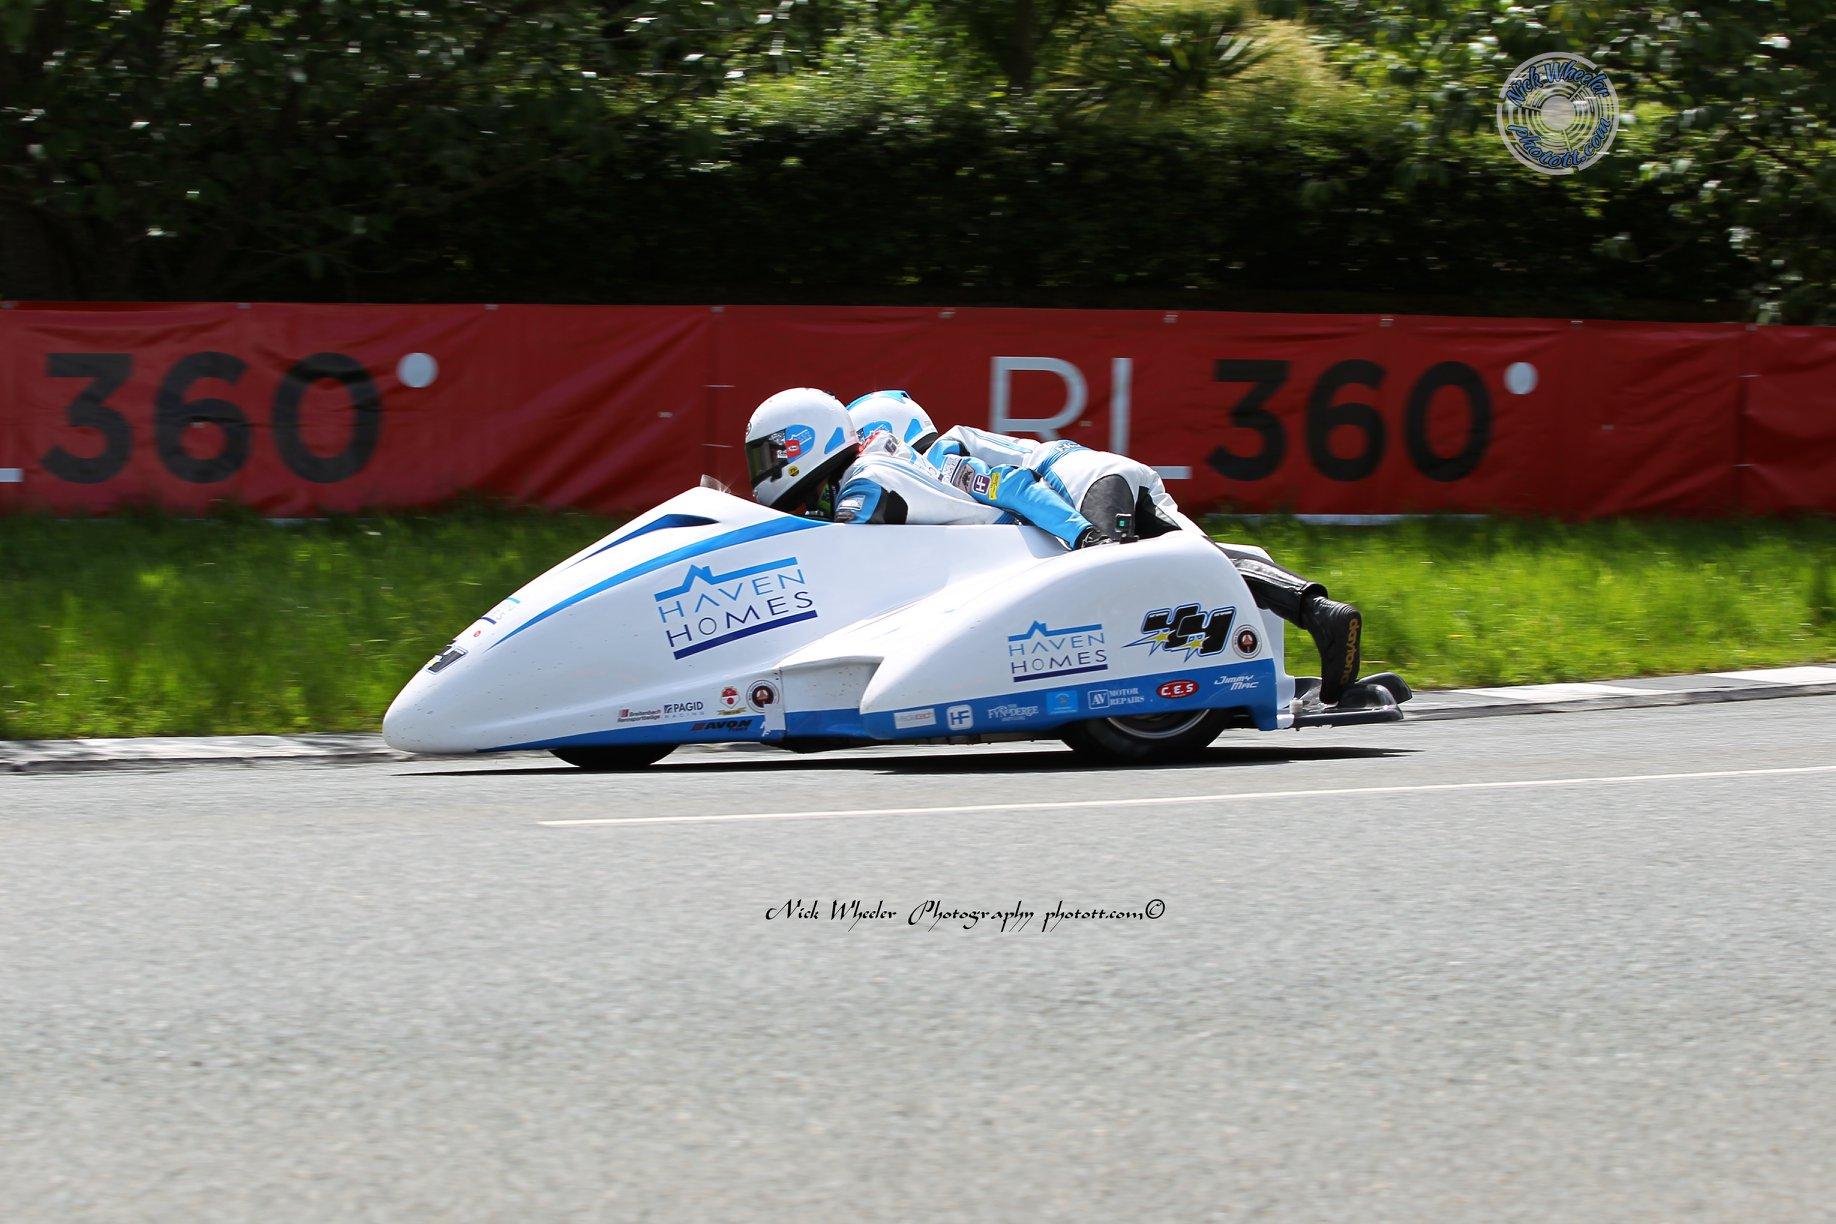 TT 2019: Crowe Brothers Awarded RST Star Of Tomorrow Accolade